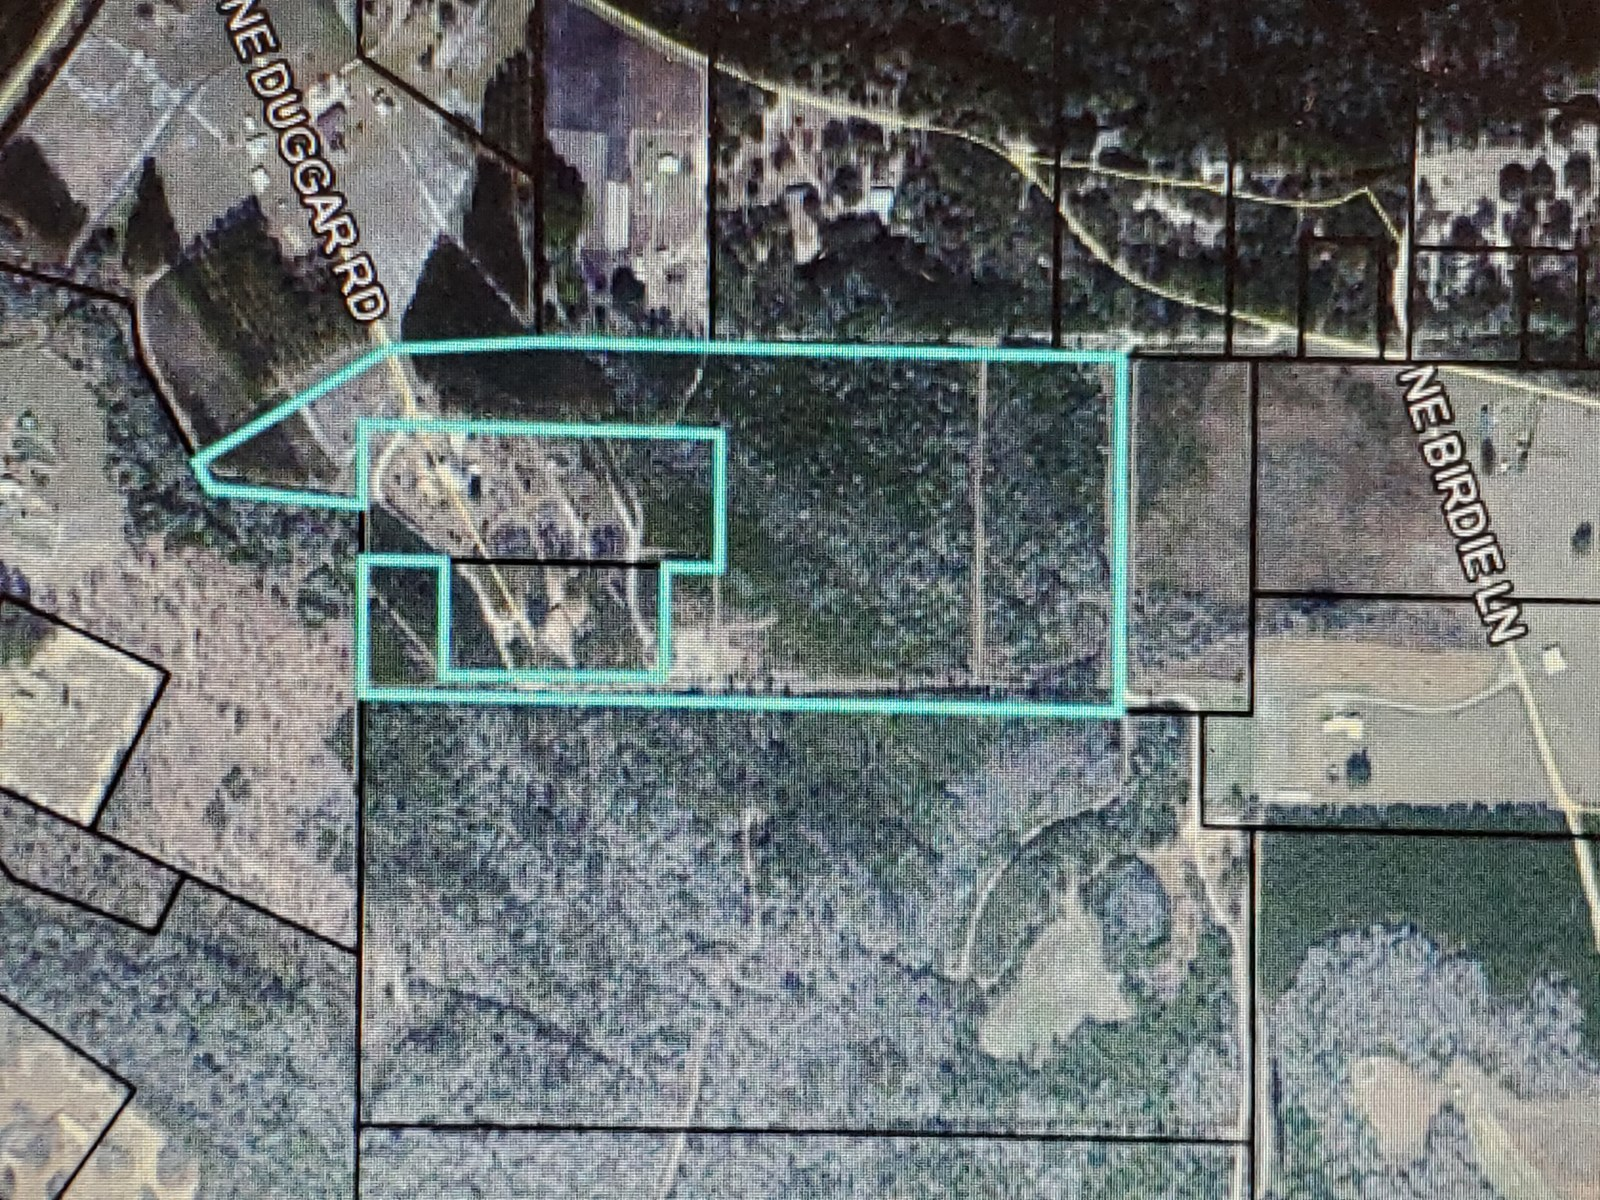 Nice land in Hosford FL near river and forest